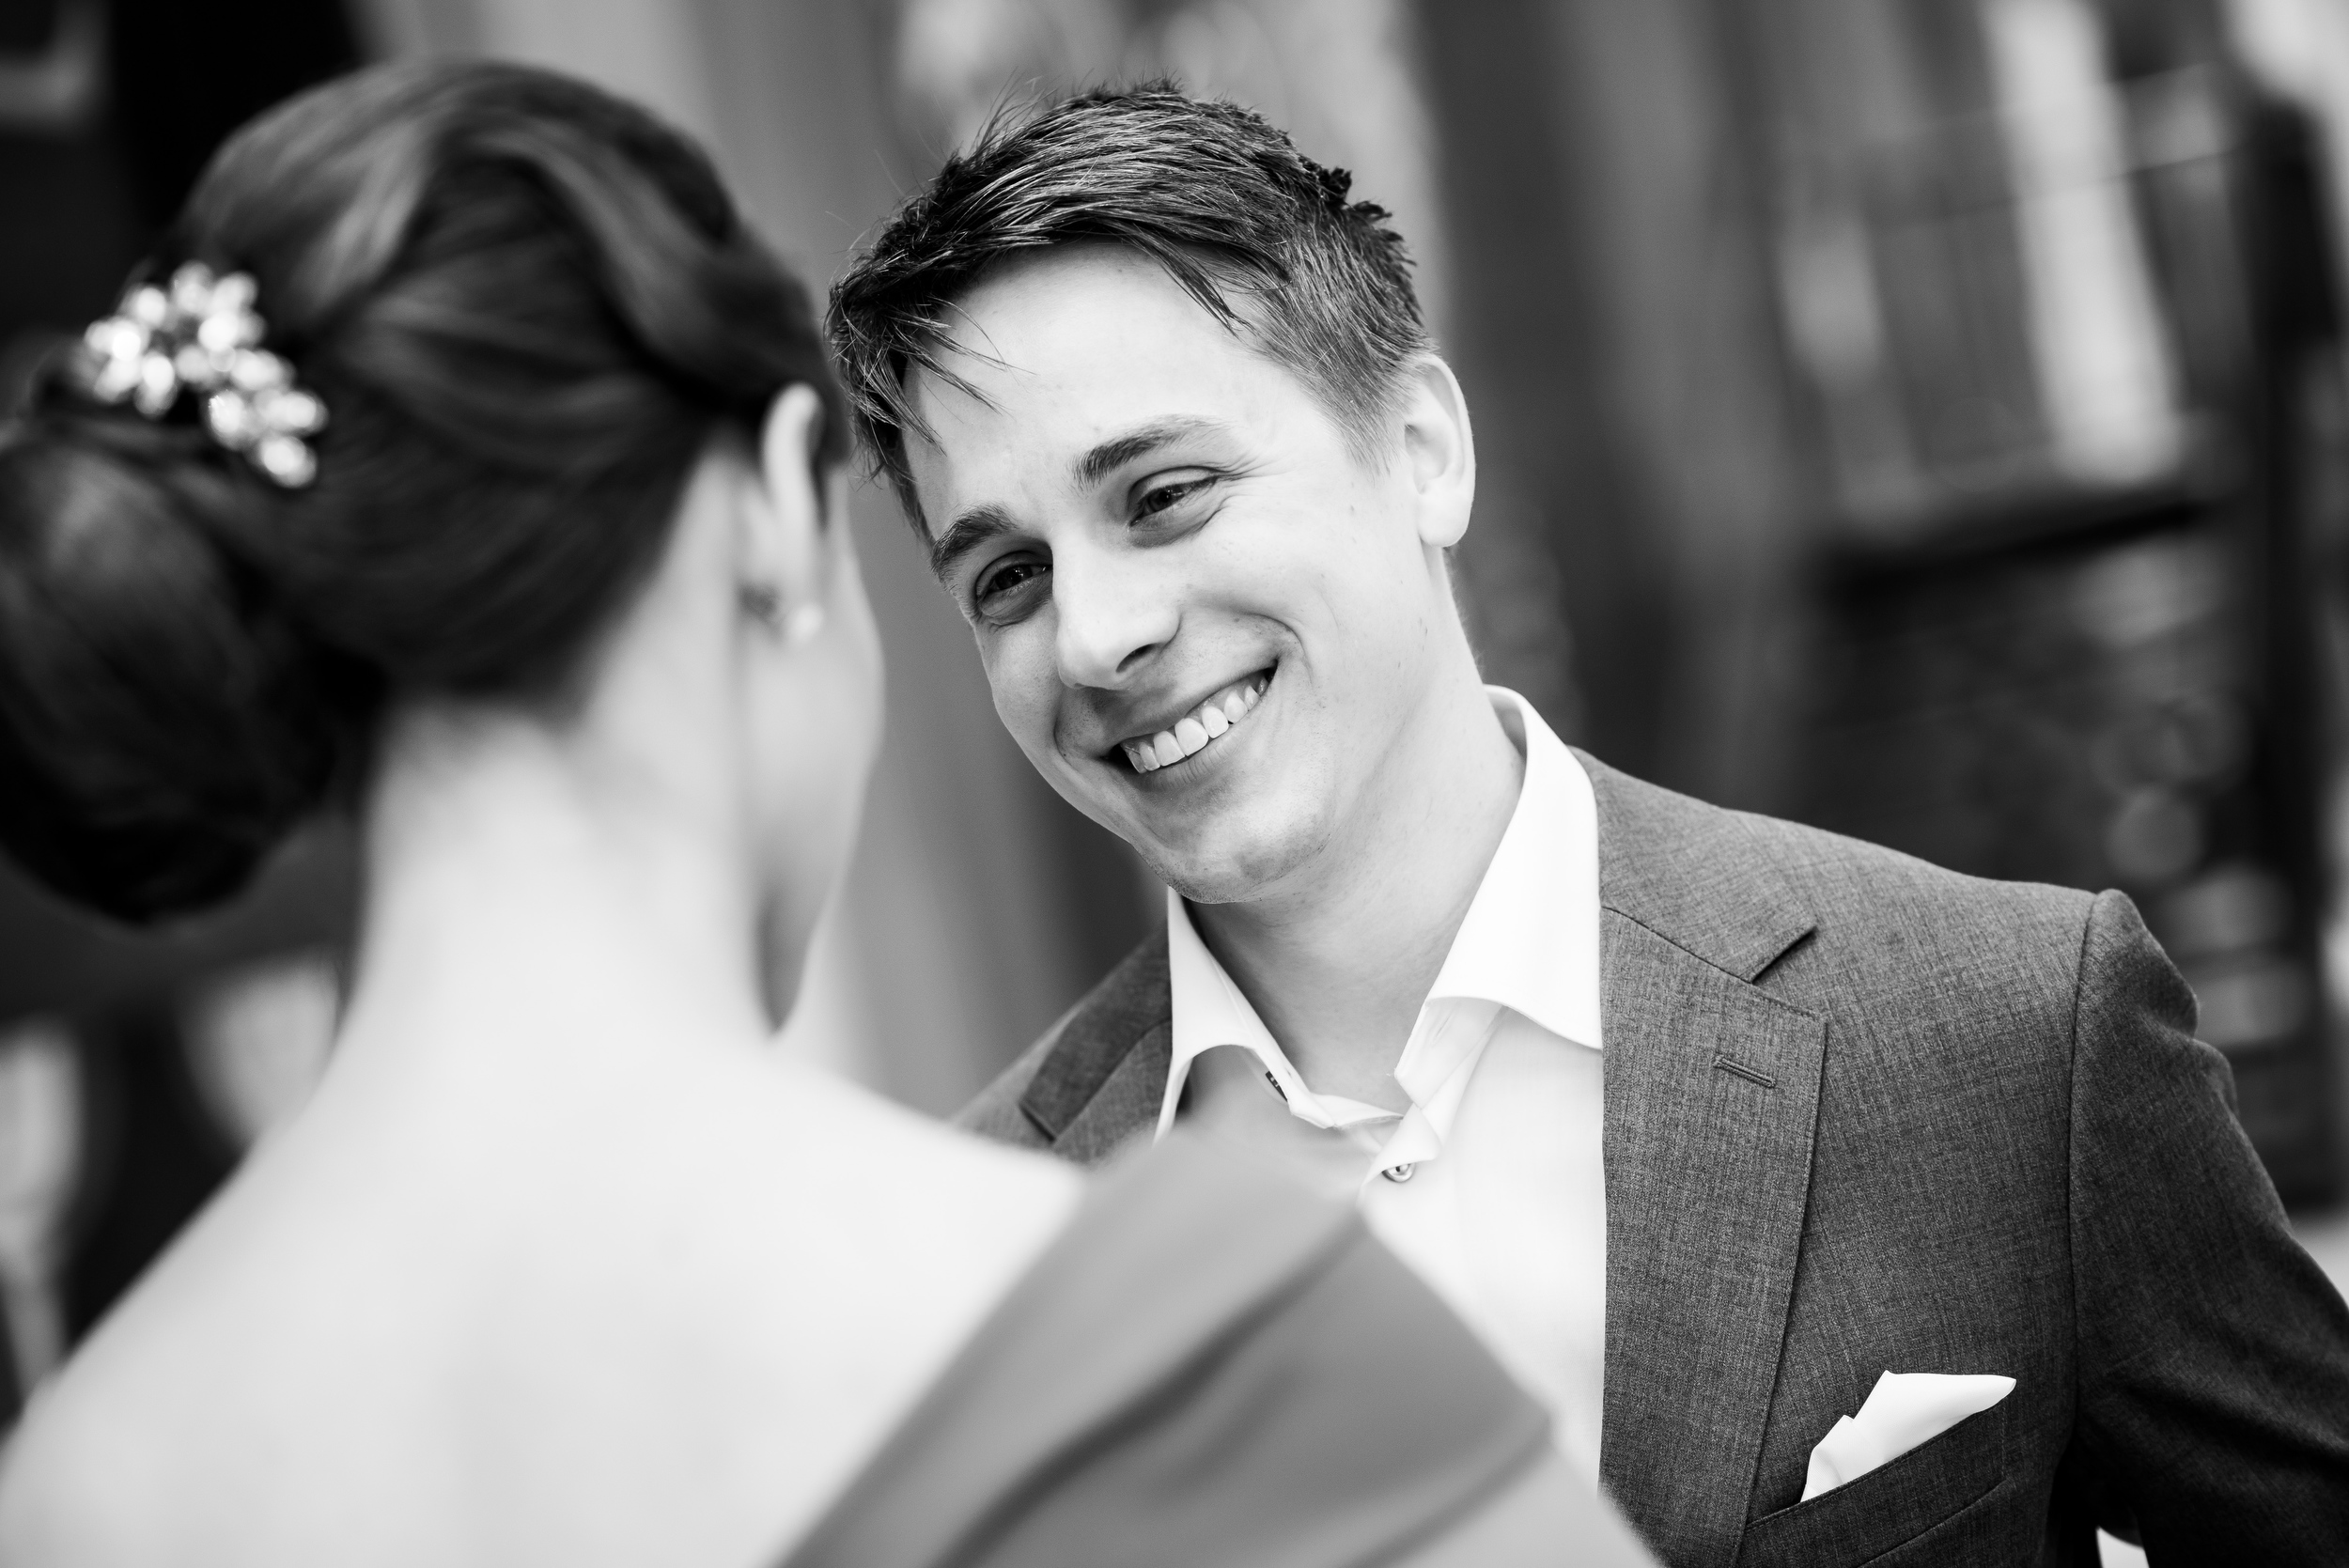 Black and white wedding photo: Carnivale Chicago wedding captured by J Brown Photography